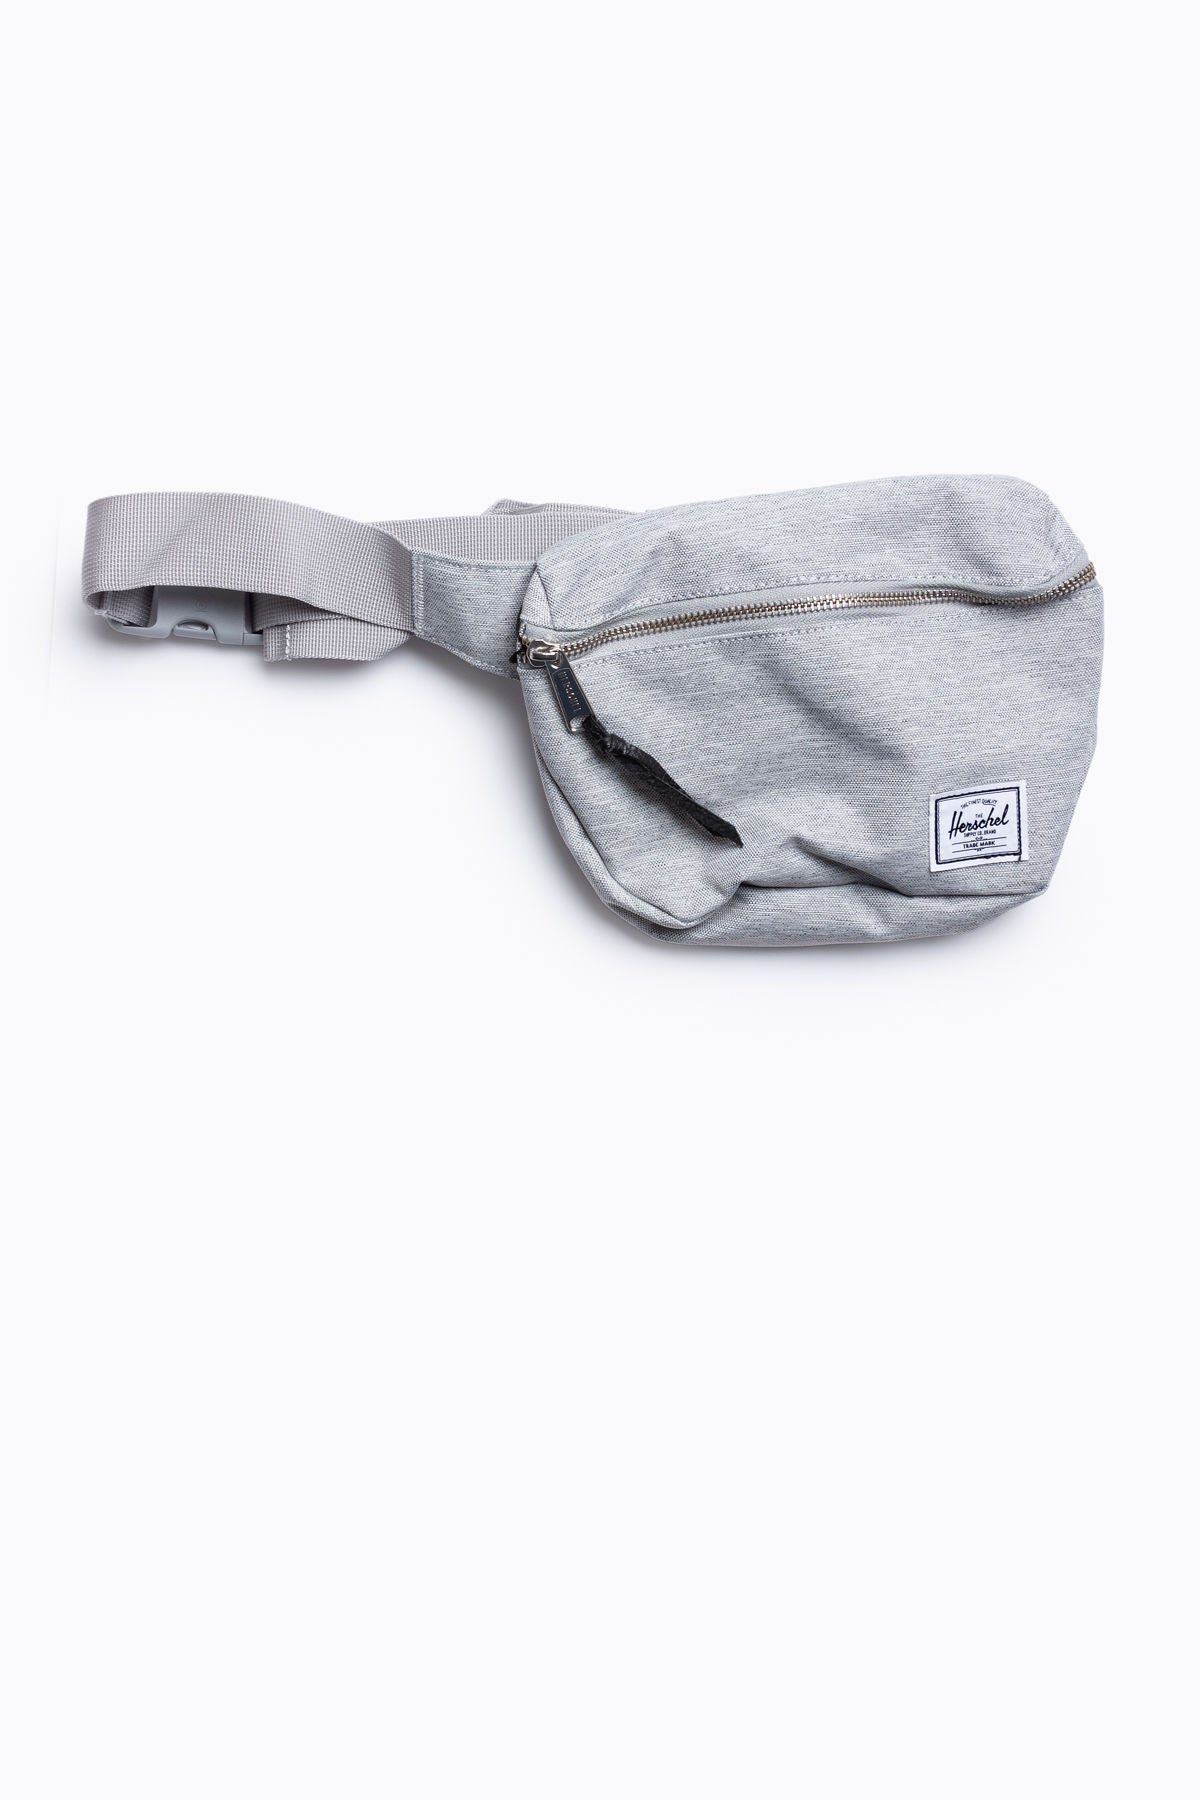 Herschel: Fifteen Hip Pack in Light Grey Crosshatch